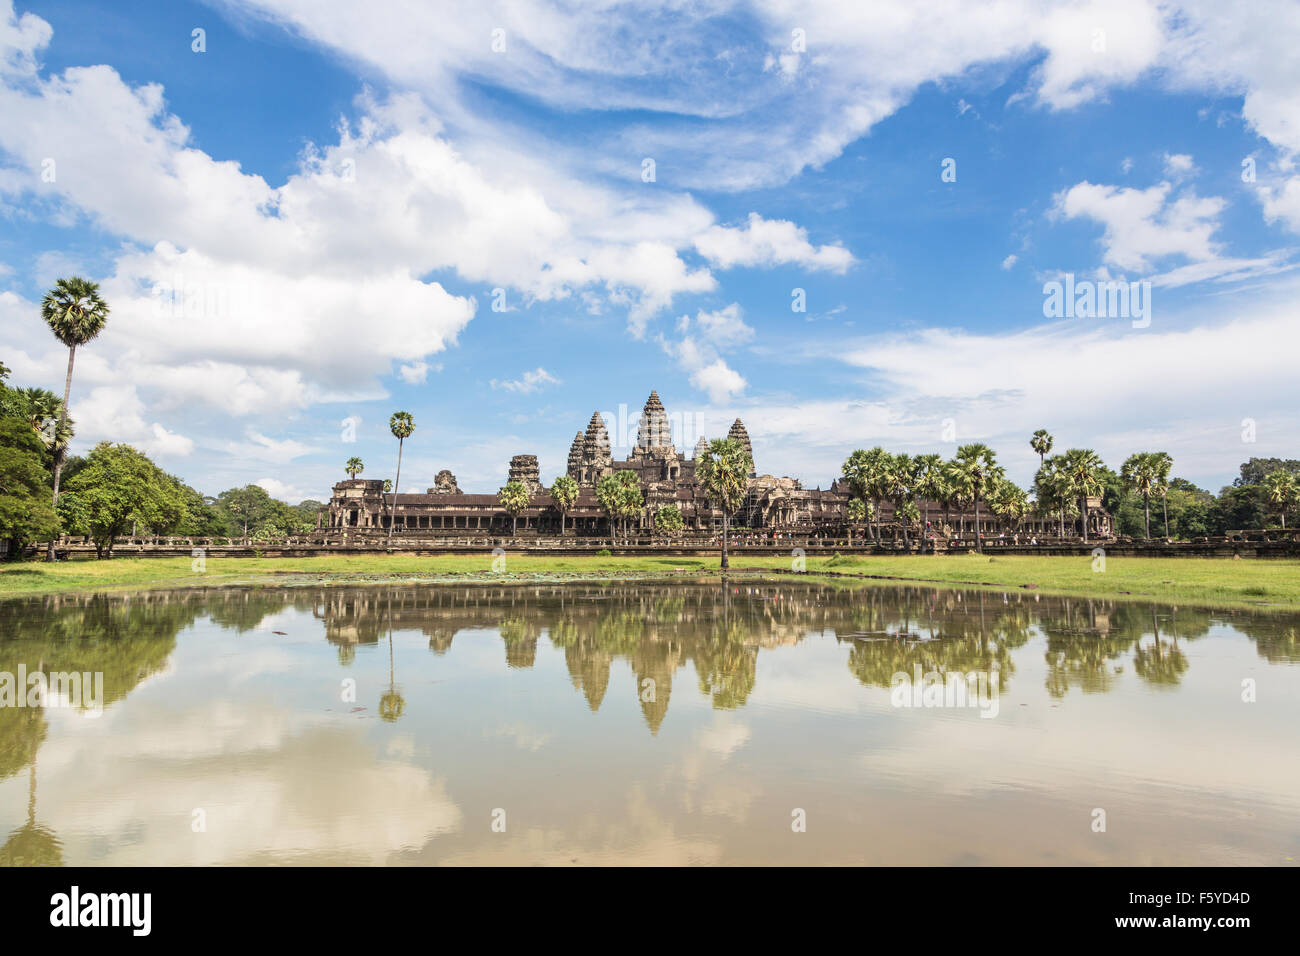 Angkor Wat is part of a stunning complex of temples and other monument near Siem Reap in Cambodia. Stock Photo